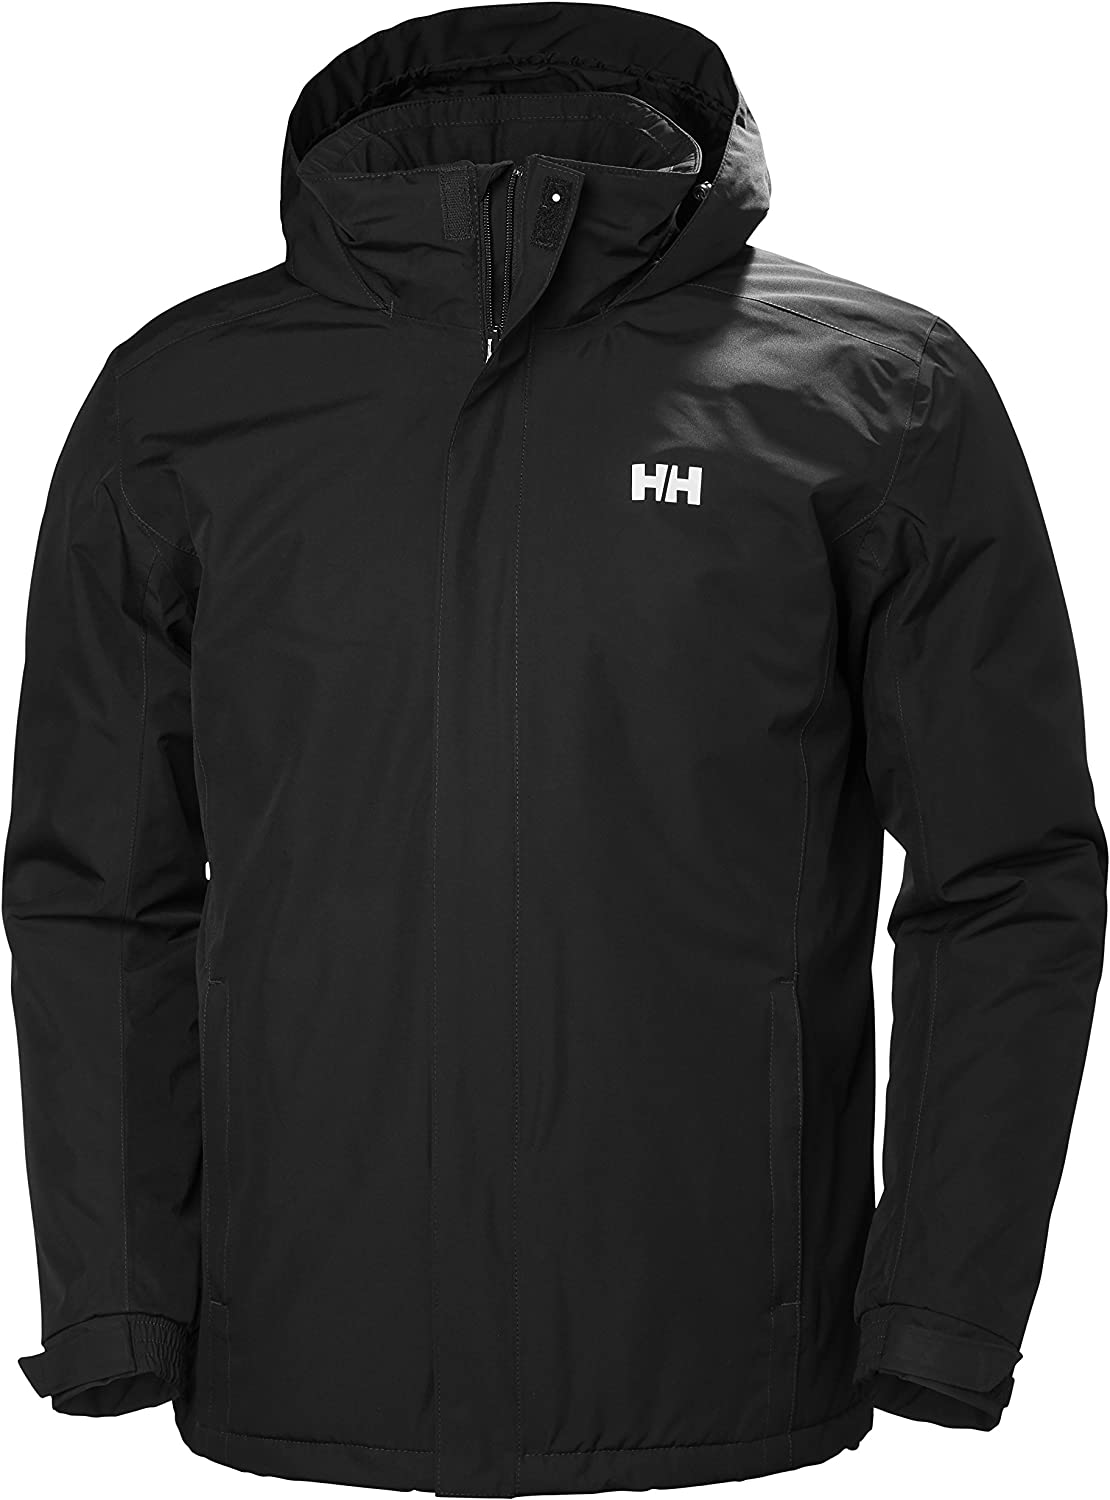 Helly Hansen Men's Waterproof Dubliner Insulated Jacket with Packable Hood for Cold Weather